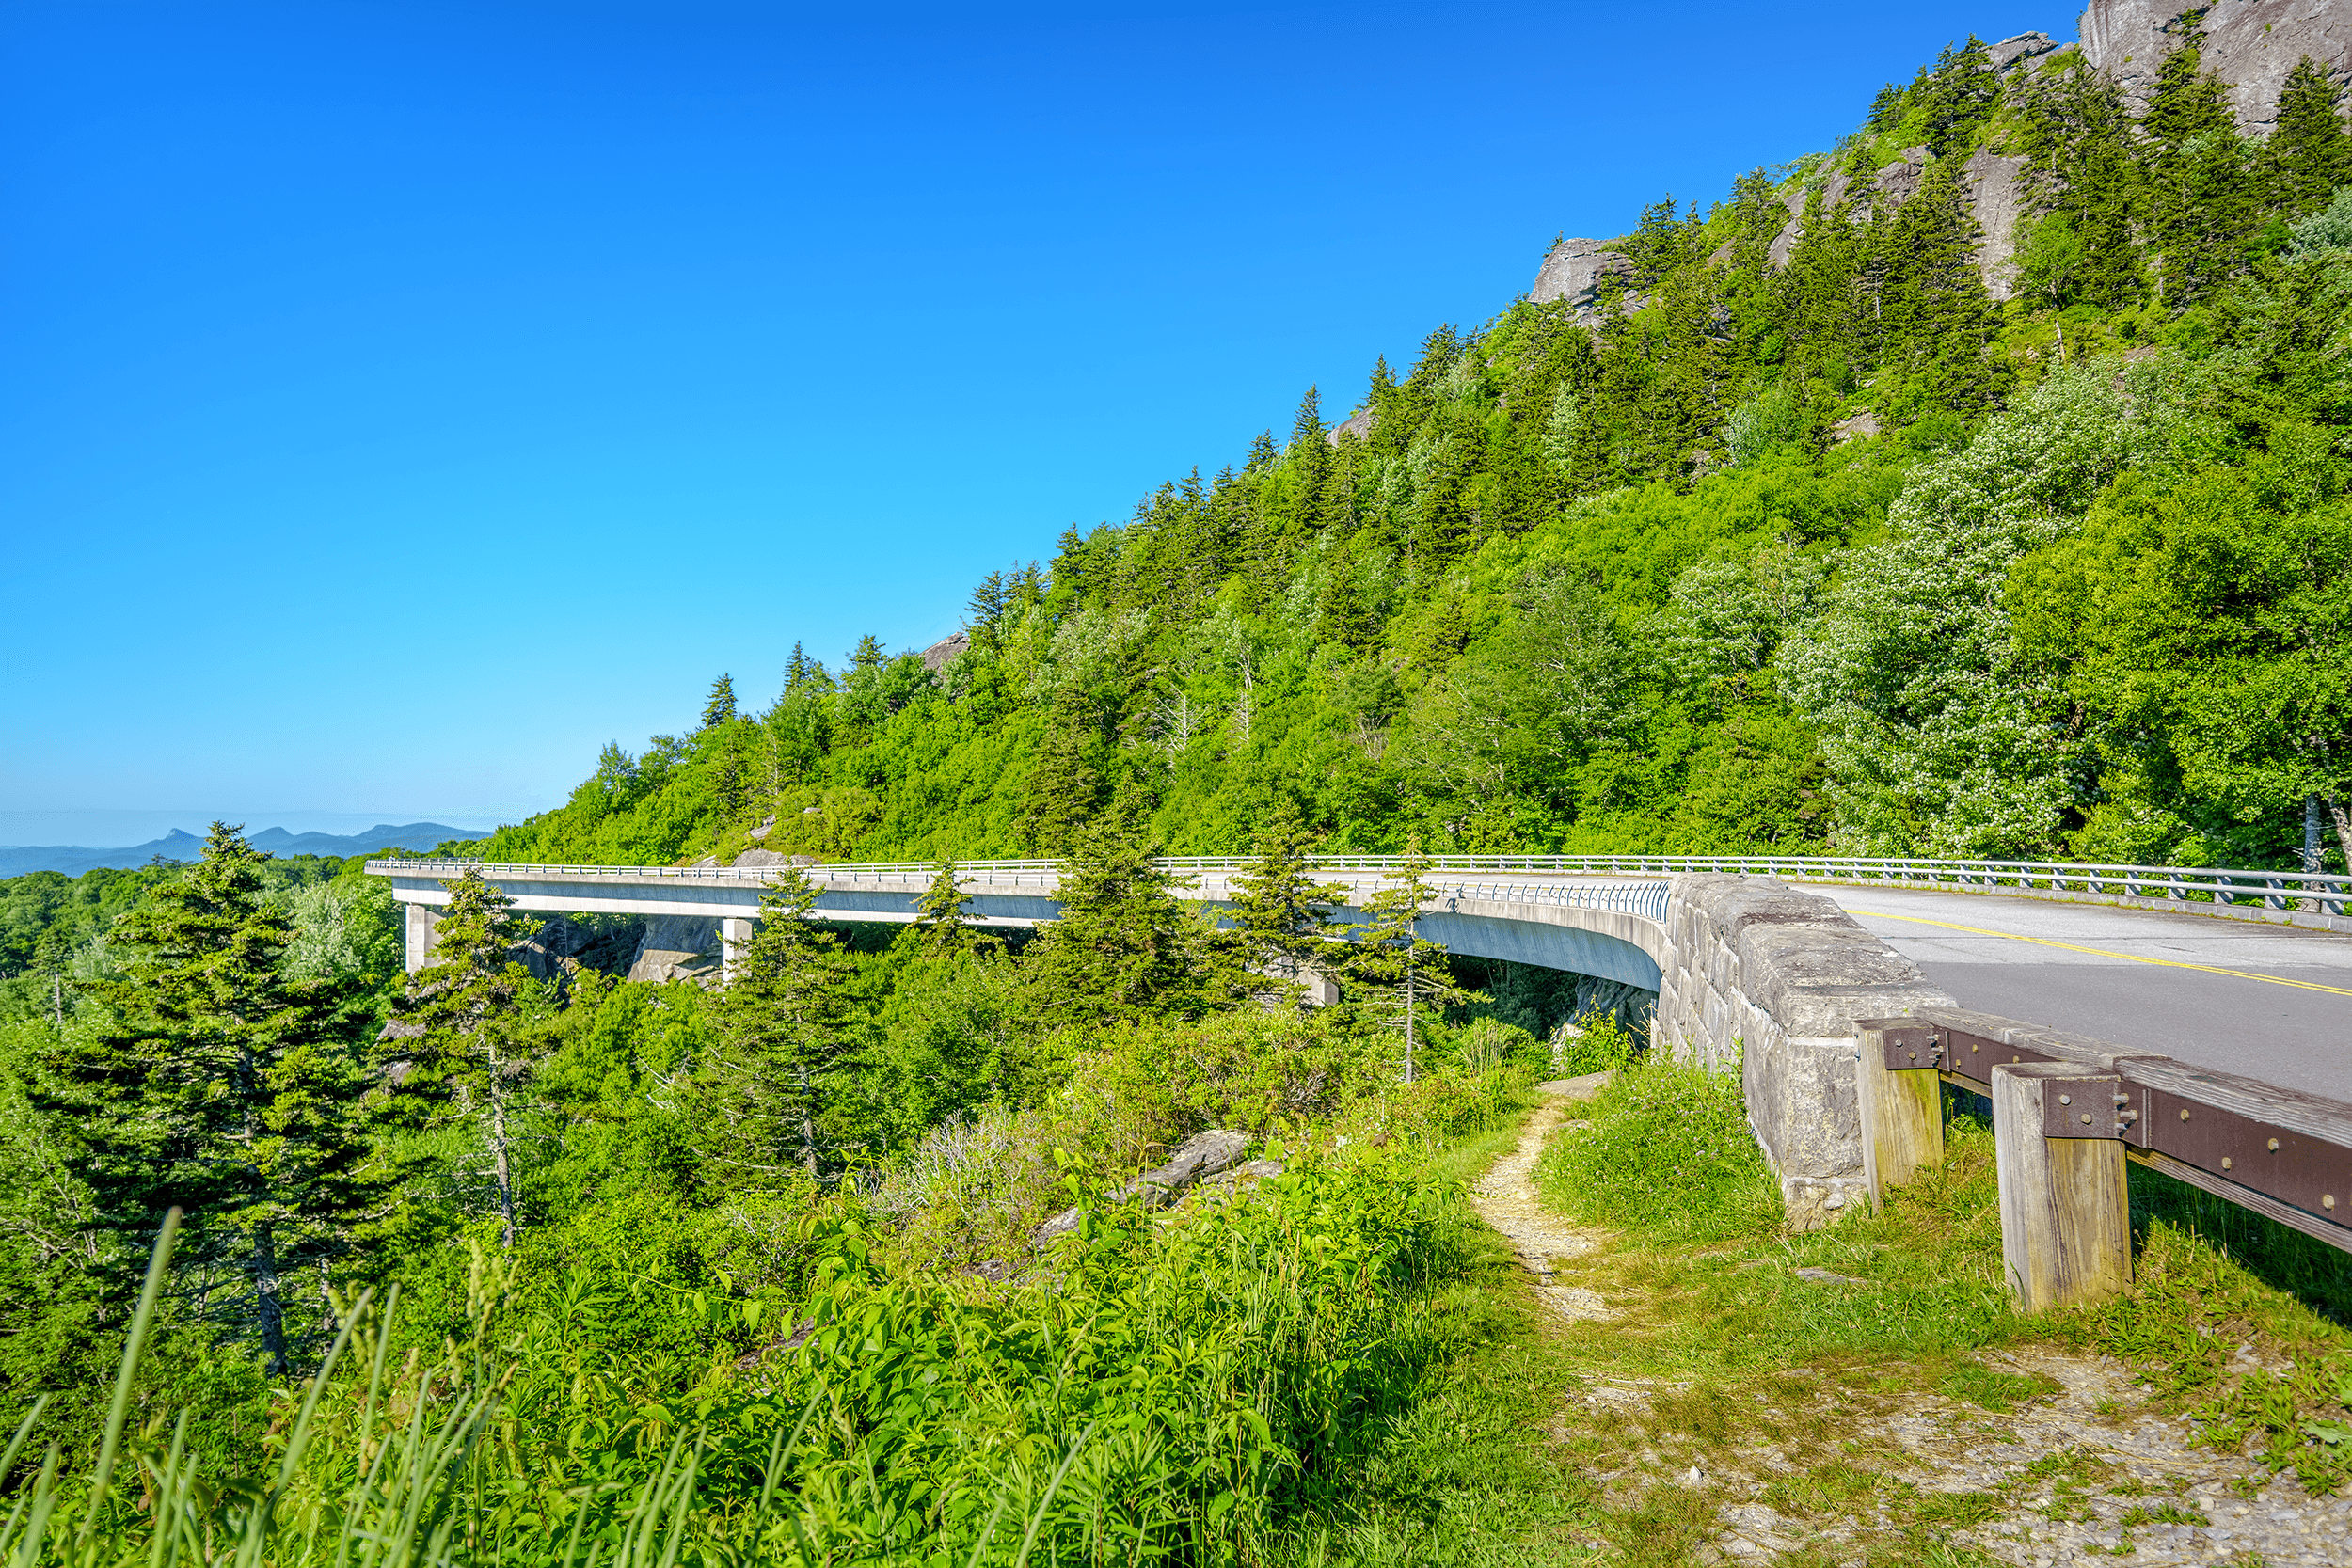 The  Linn Cove Viaduct  rests on seven giant concrete footings and follows in snake-shape form the contours of  Grandfather Mountain  without touching the slopes of  Grandfather Mountain , making the viaduct an engineering marvel and one of the most photographed attractions along the Blue Ridge Parkway.